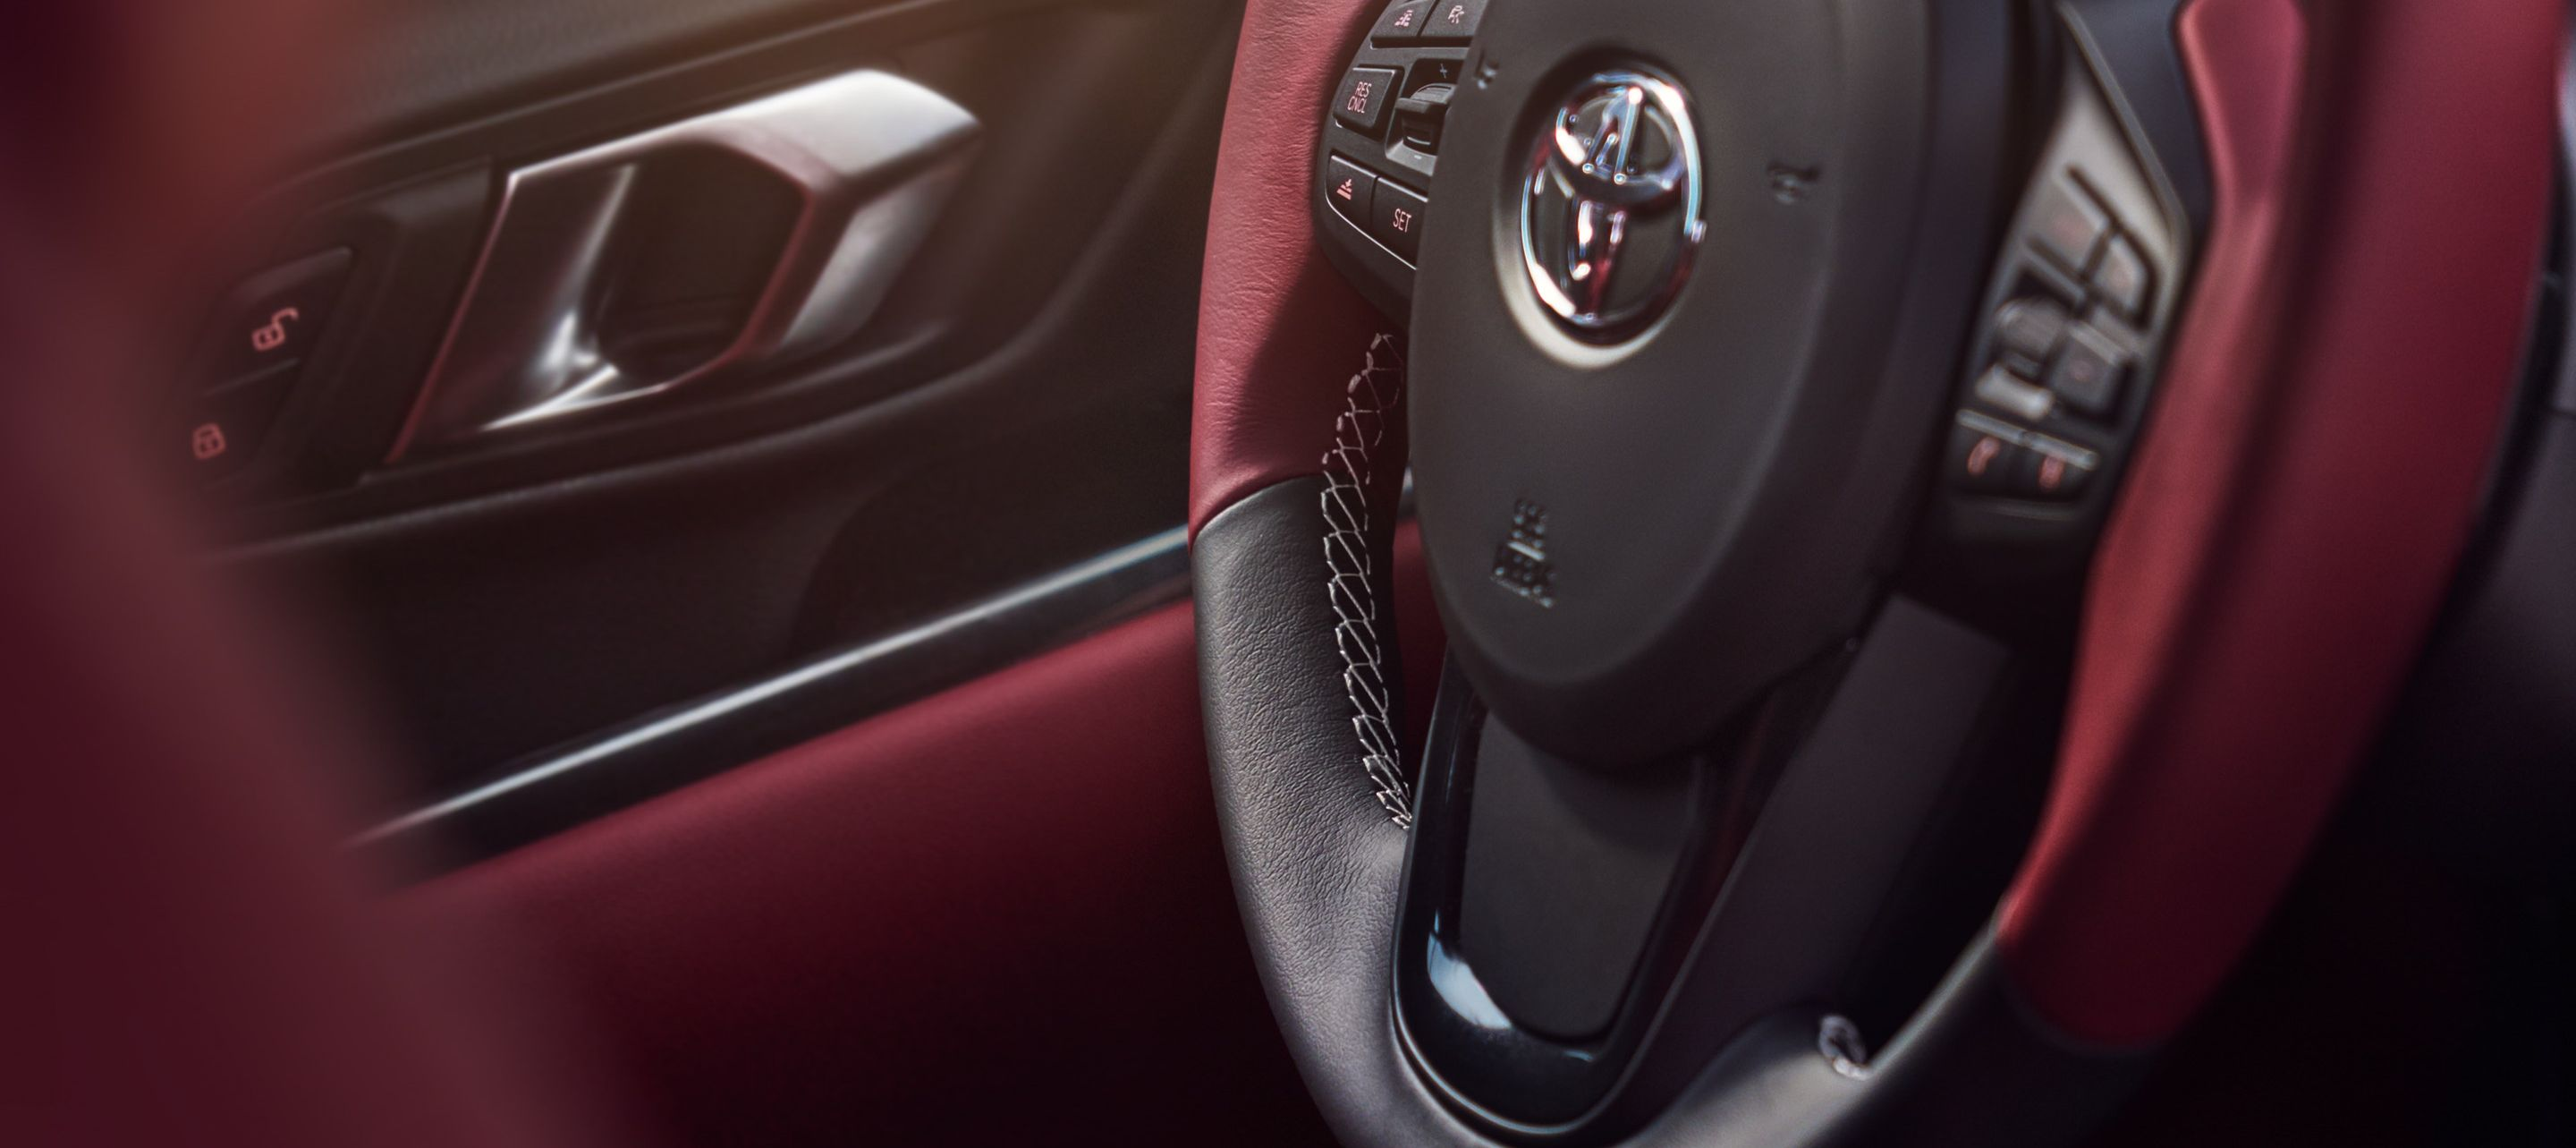 Red-Accented Cabin of the 2020 Toyota Supra